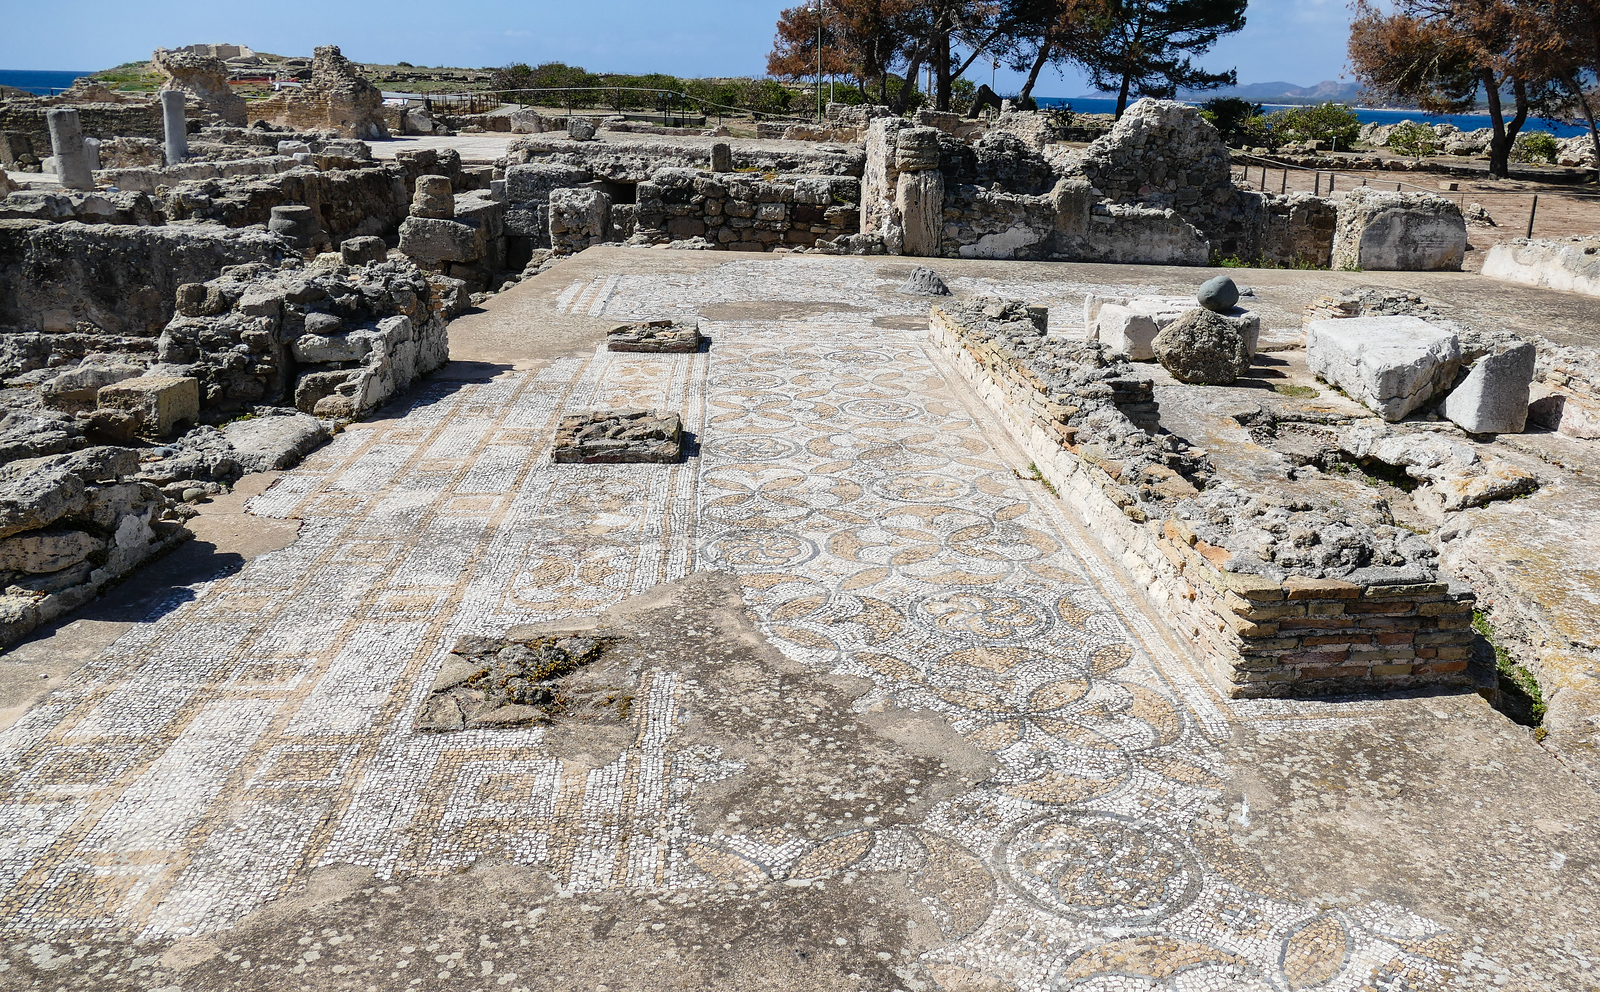 Mosaics in the ancient city of Nora, Sardinia. Explore this historical site on a cruise excursion. #Sardinia #Nora #cruise